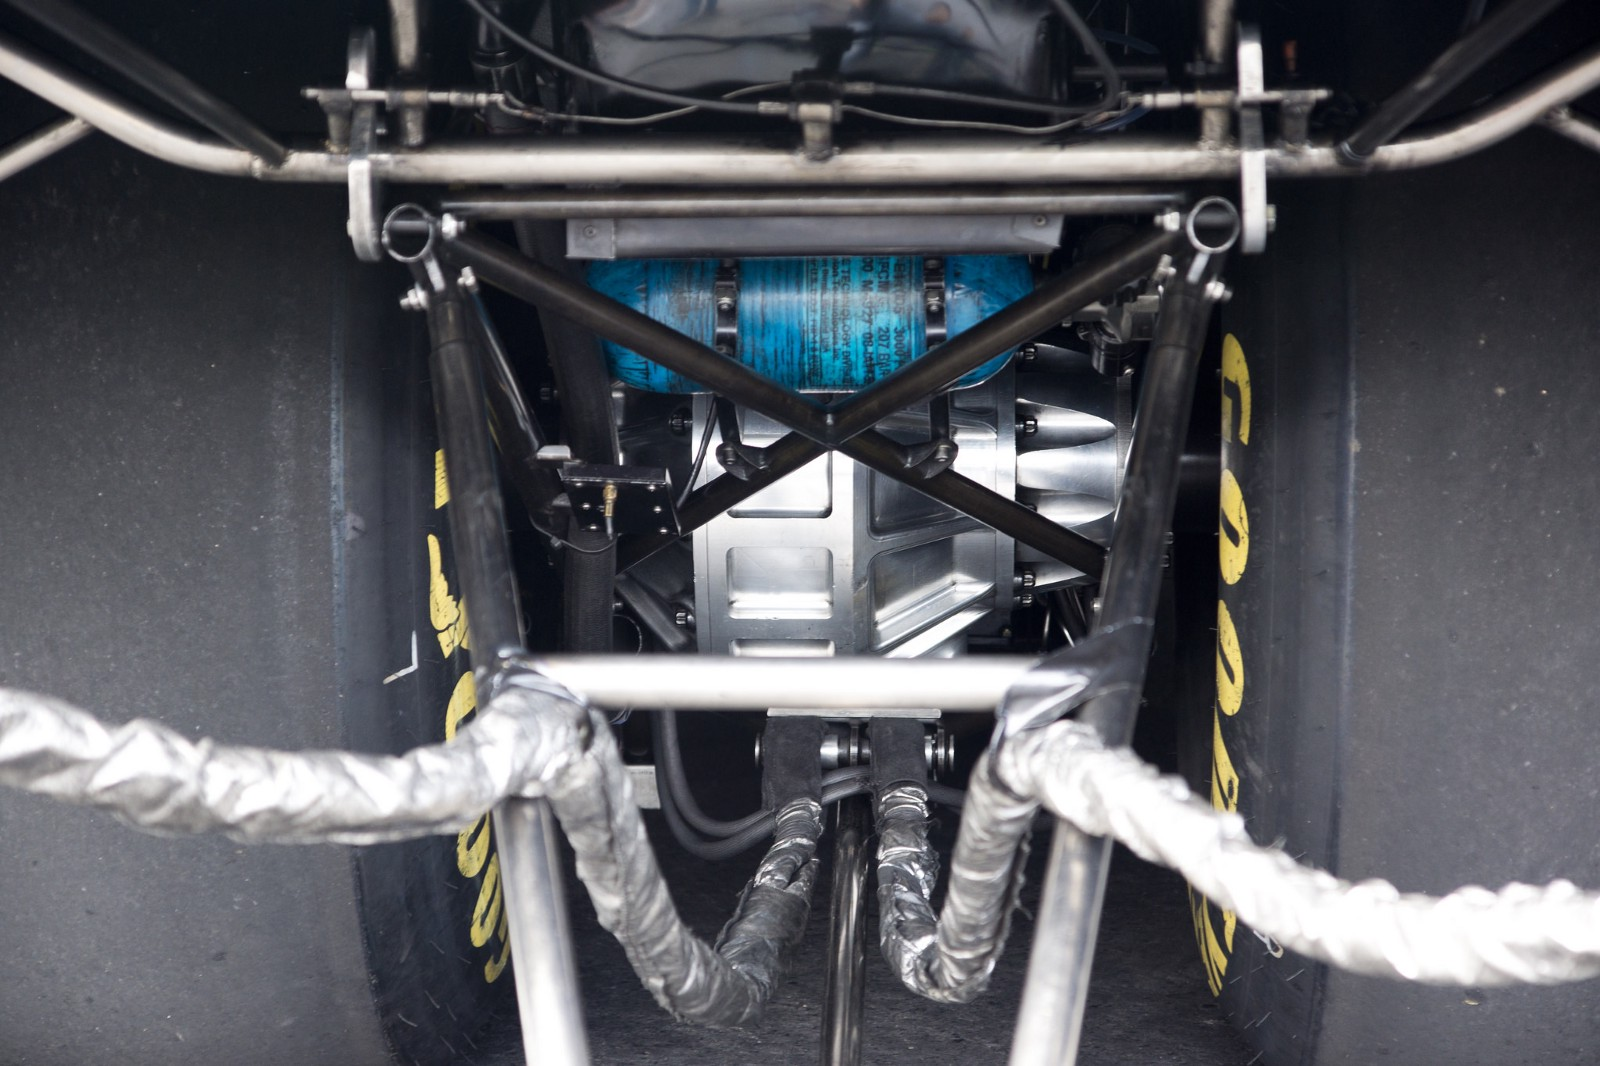 The gear box of a nitro funny car hiding the gears inside